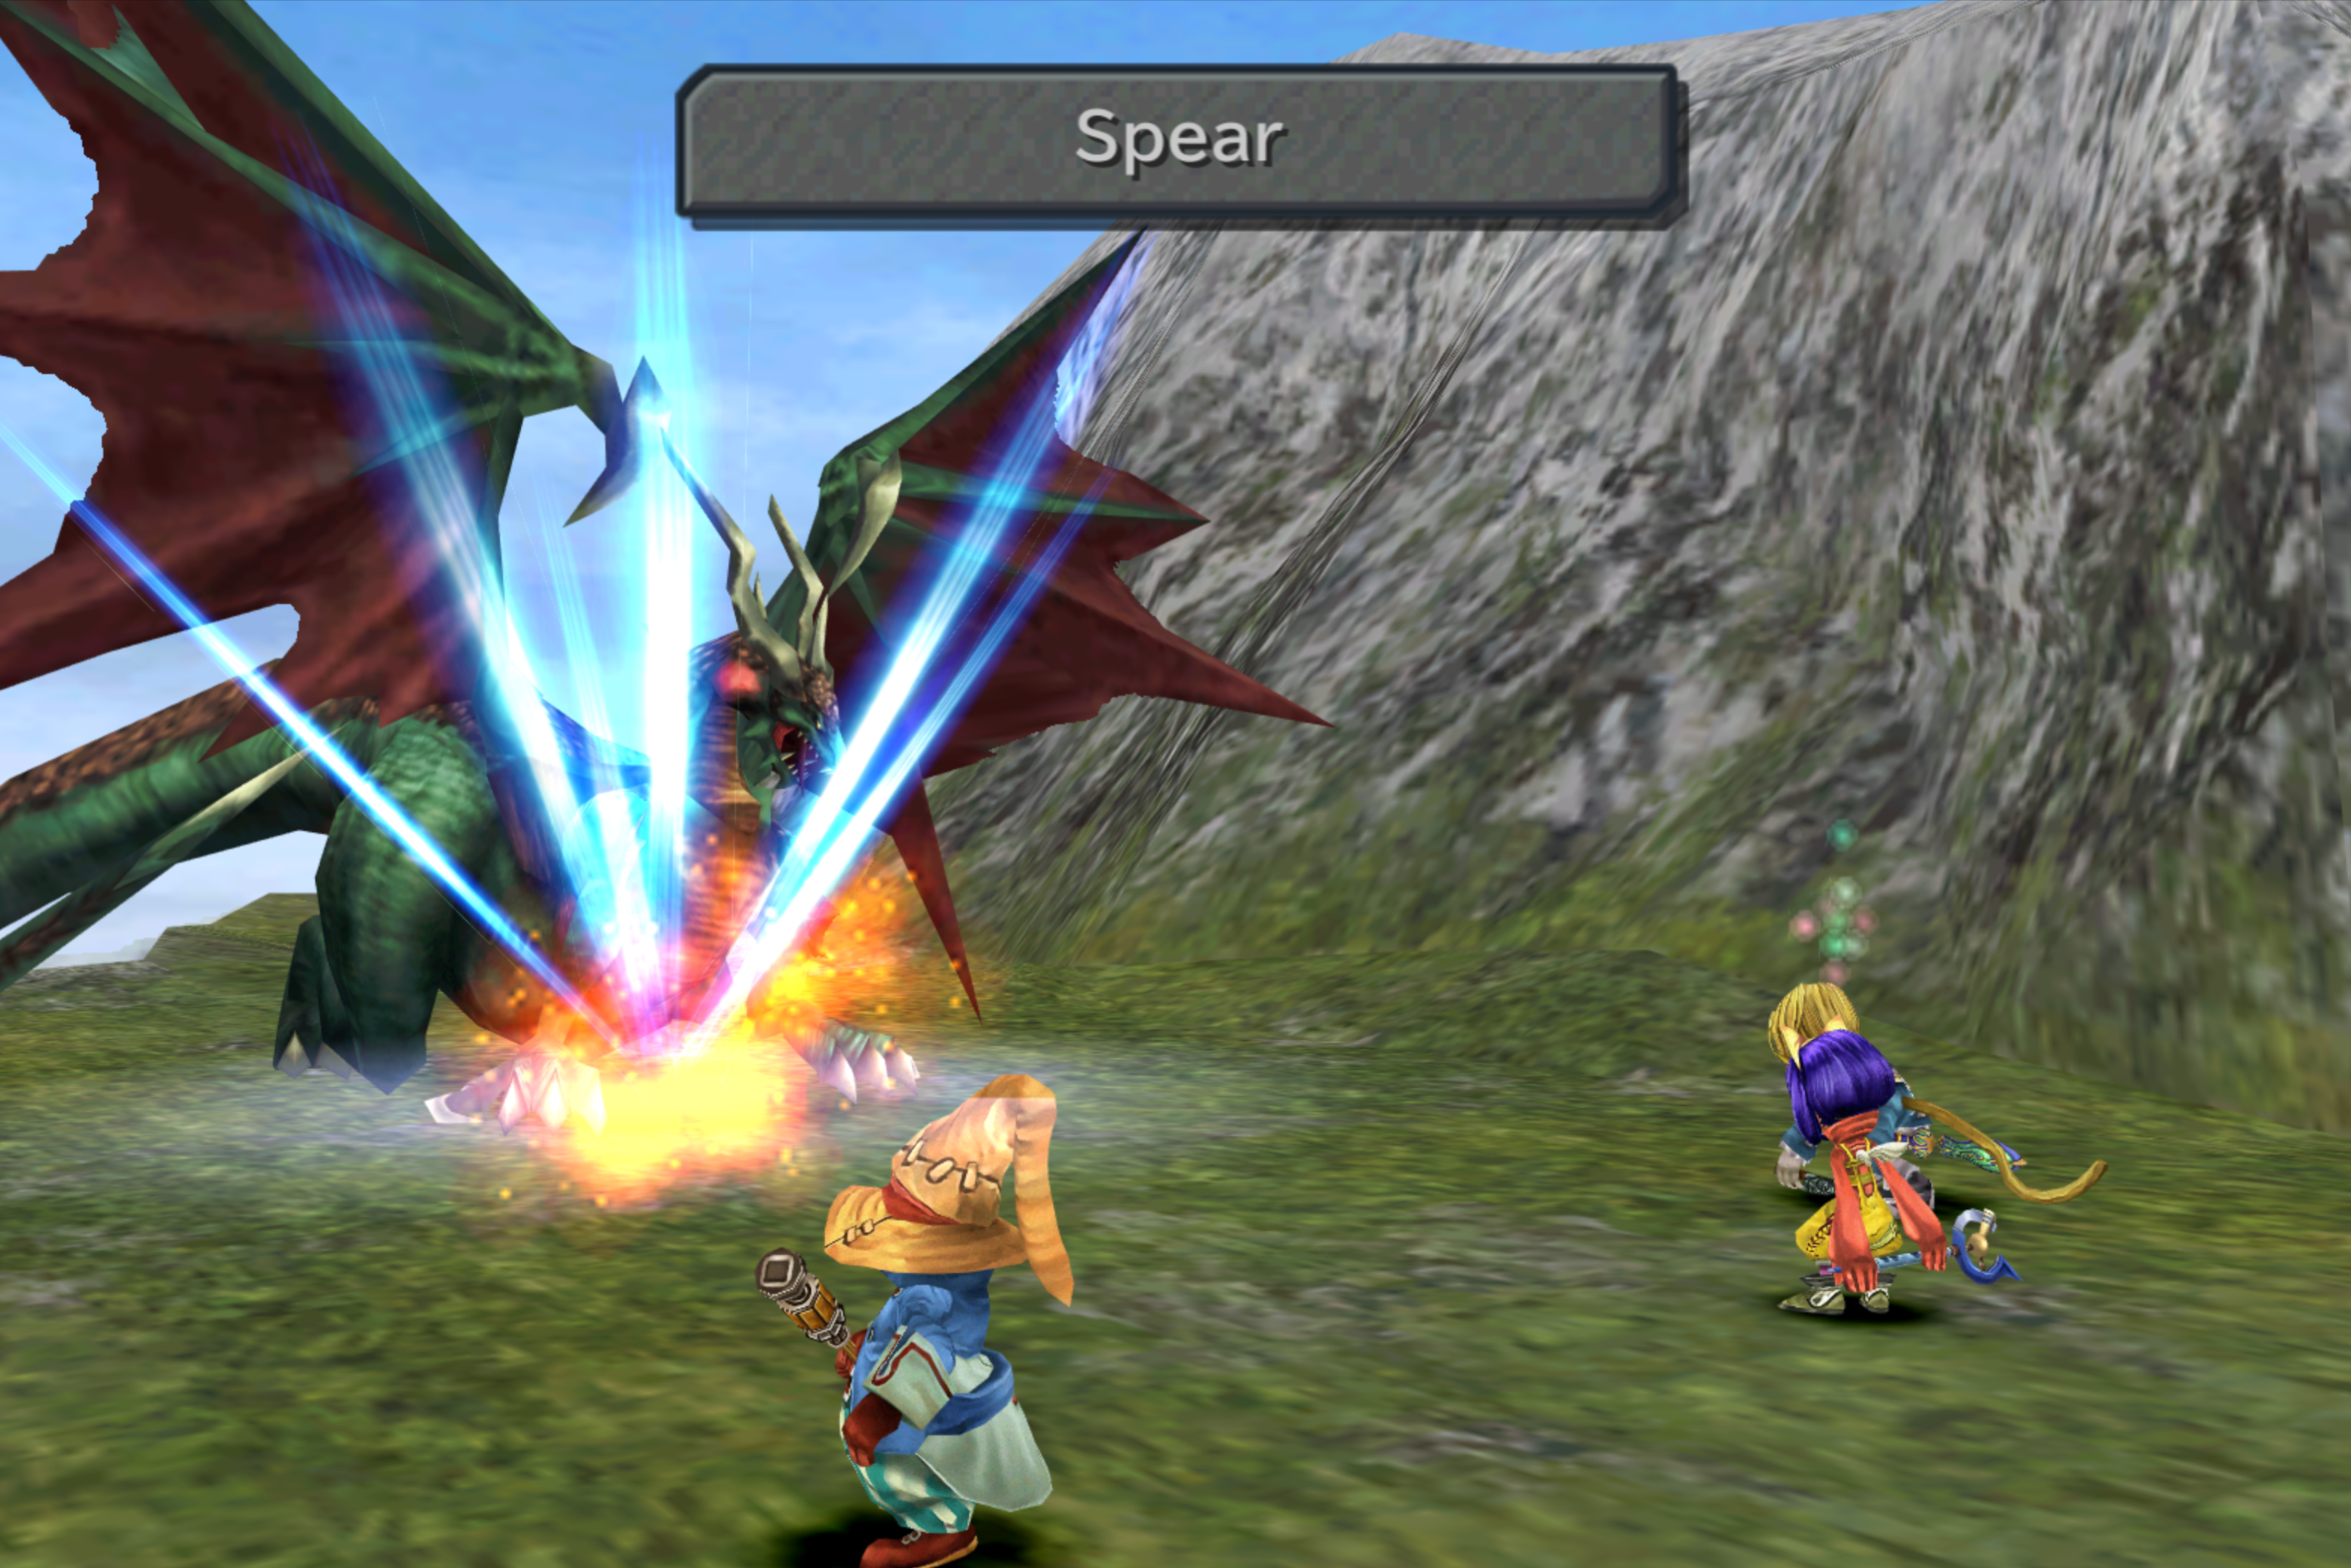 File:FFIX Spear.png